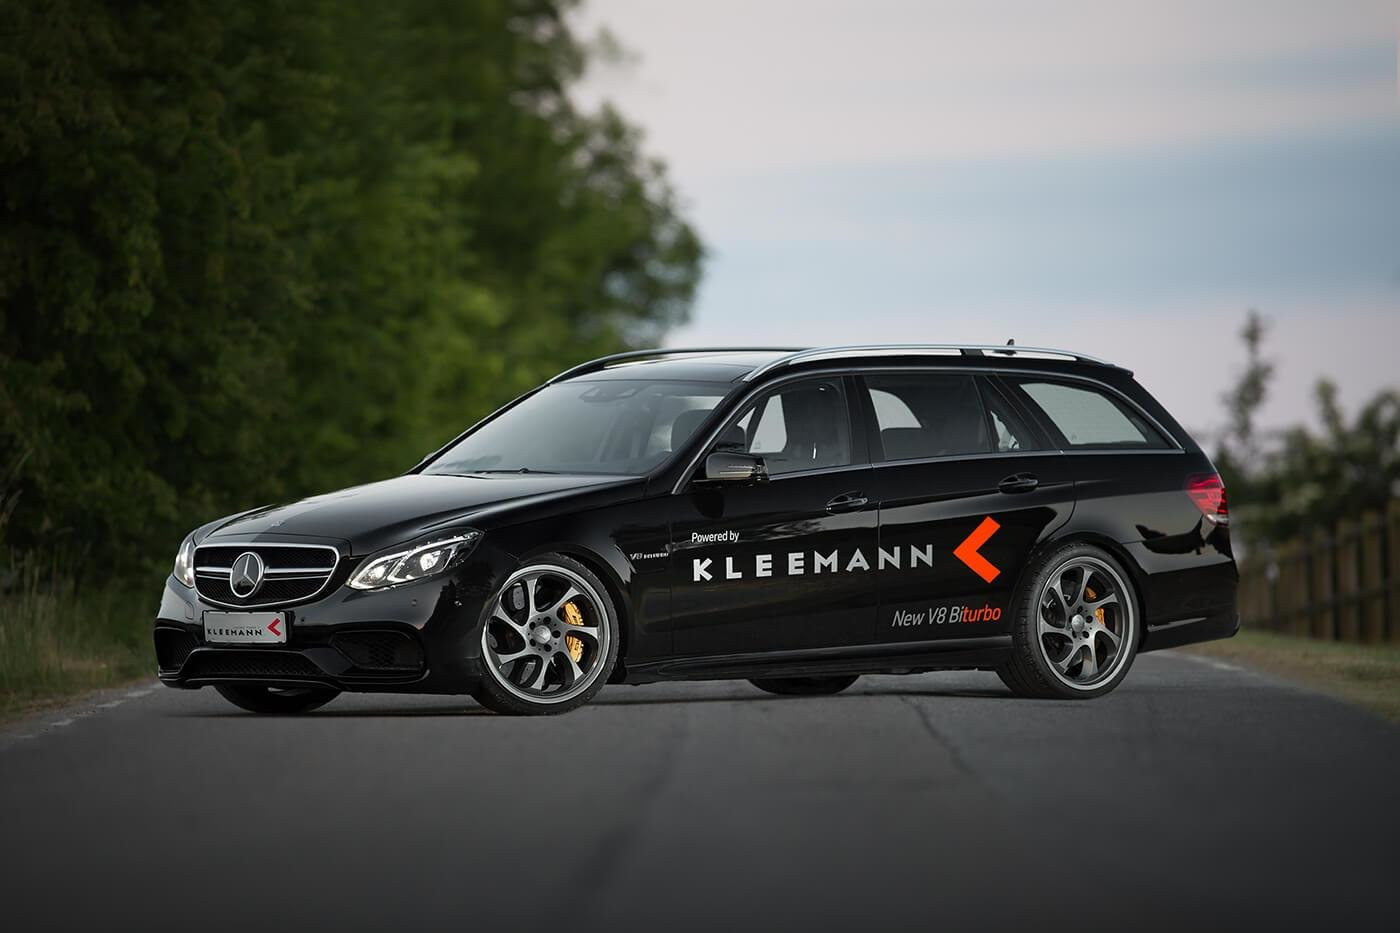 New Kleemann E63S K4 Kleemann Mercedes On This Month